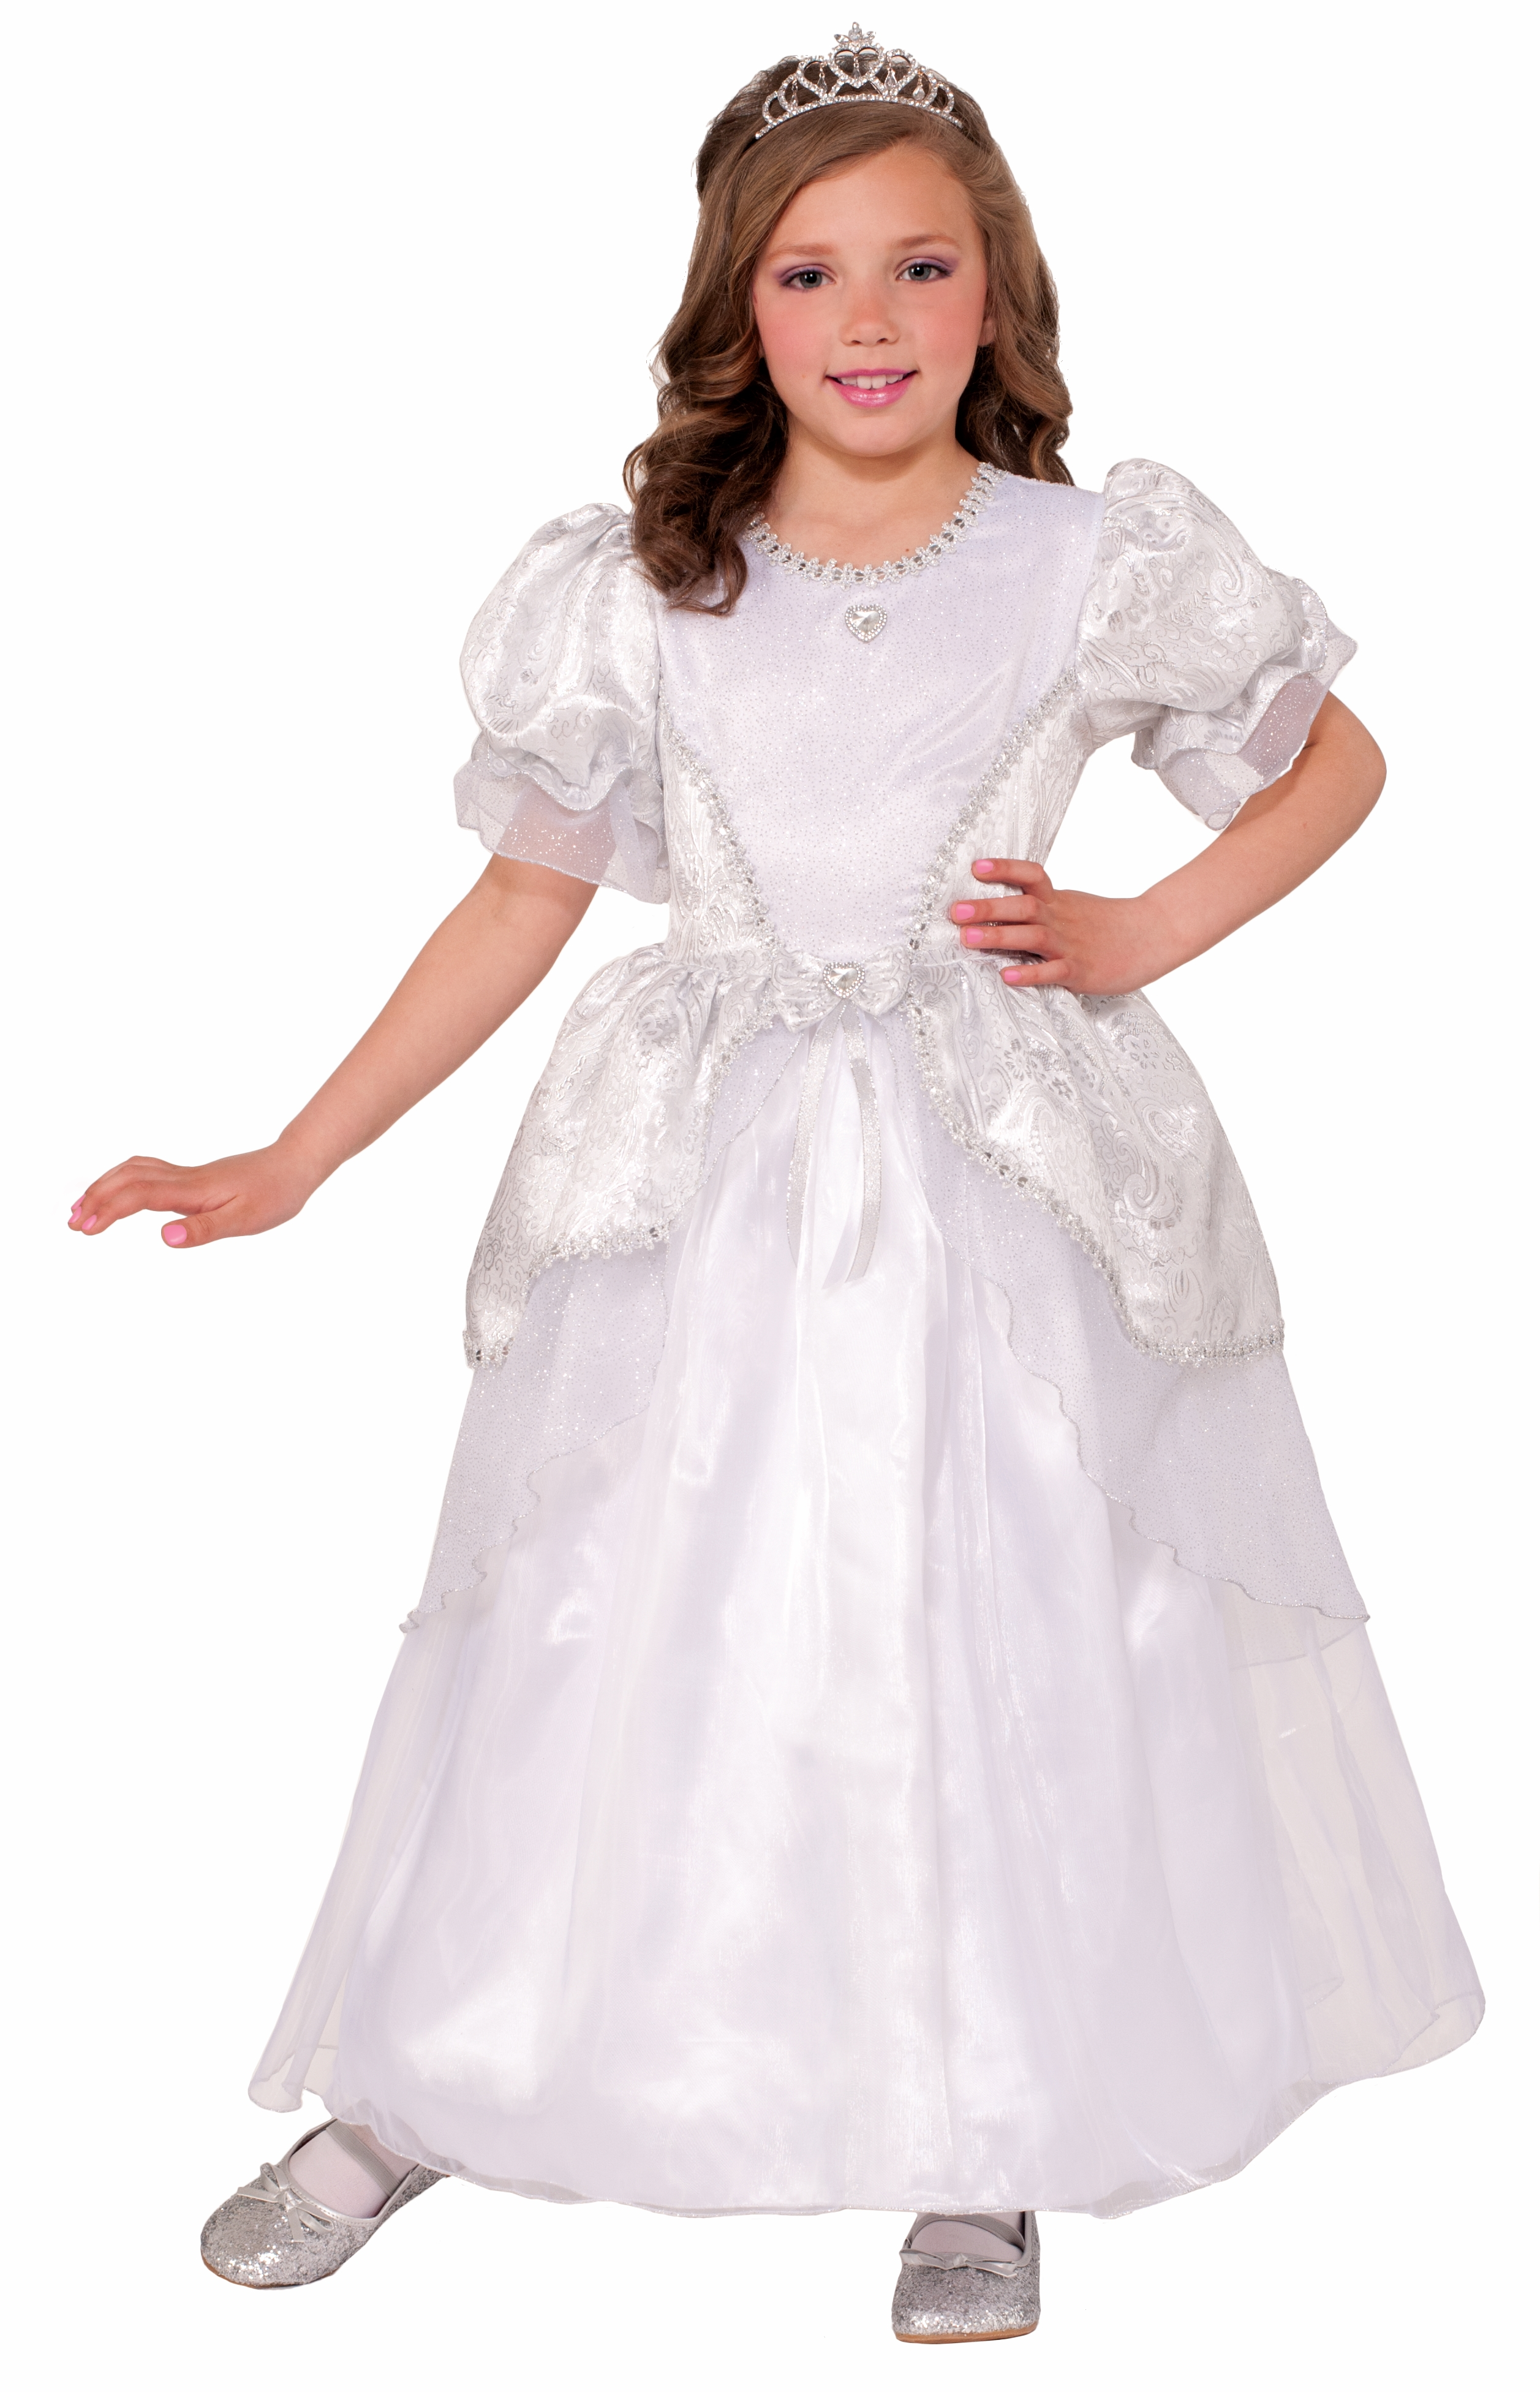 Deluxe Princess Pearl Costume Fancy Dress White Wedding Gown Hoop ...